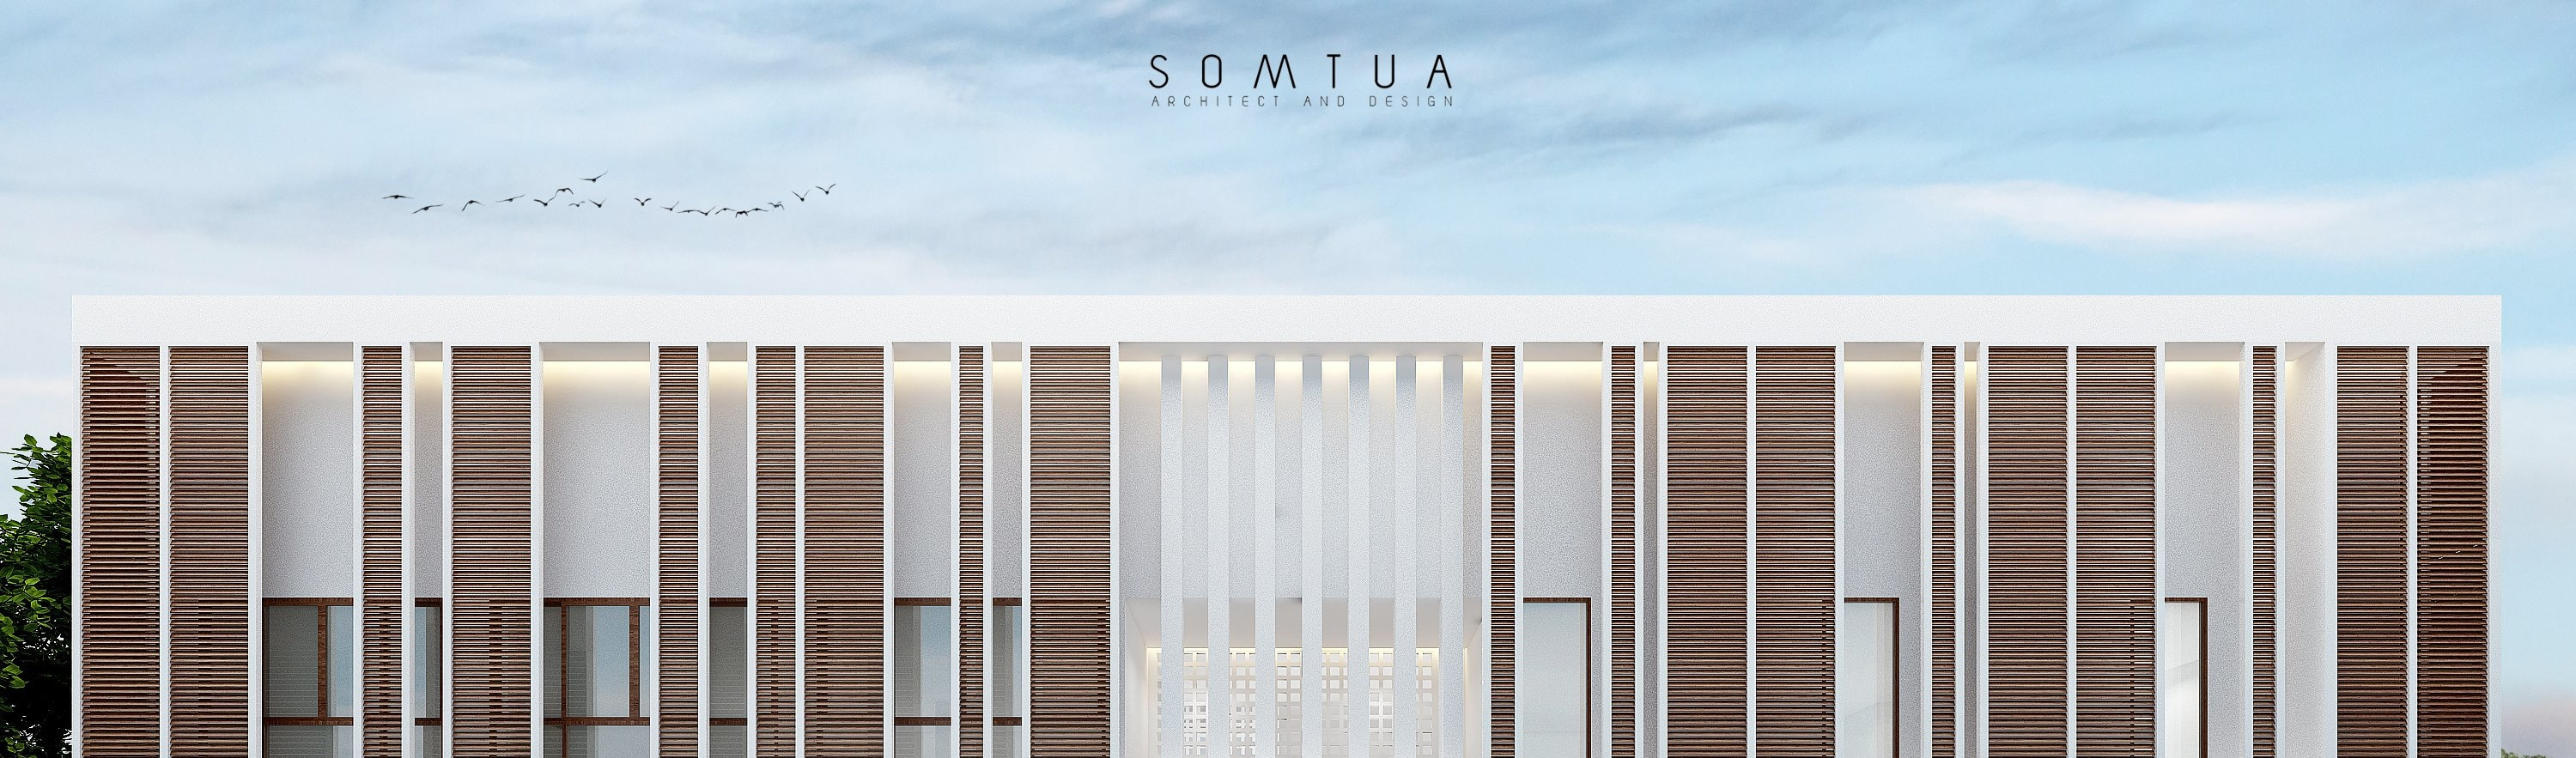 somtua archiect and design